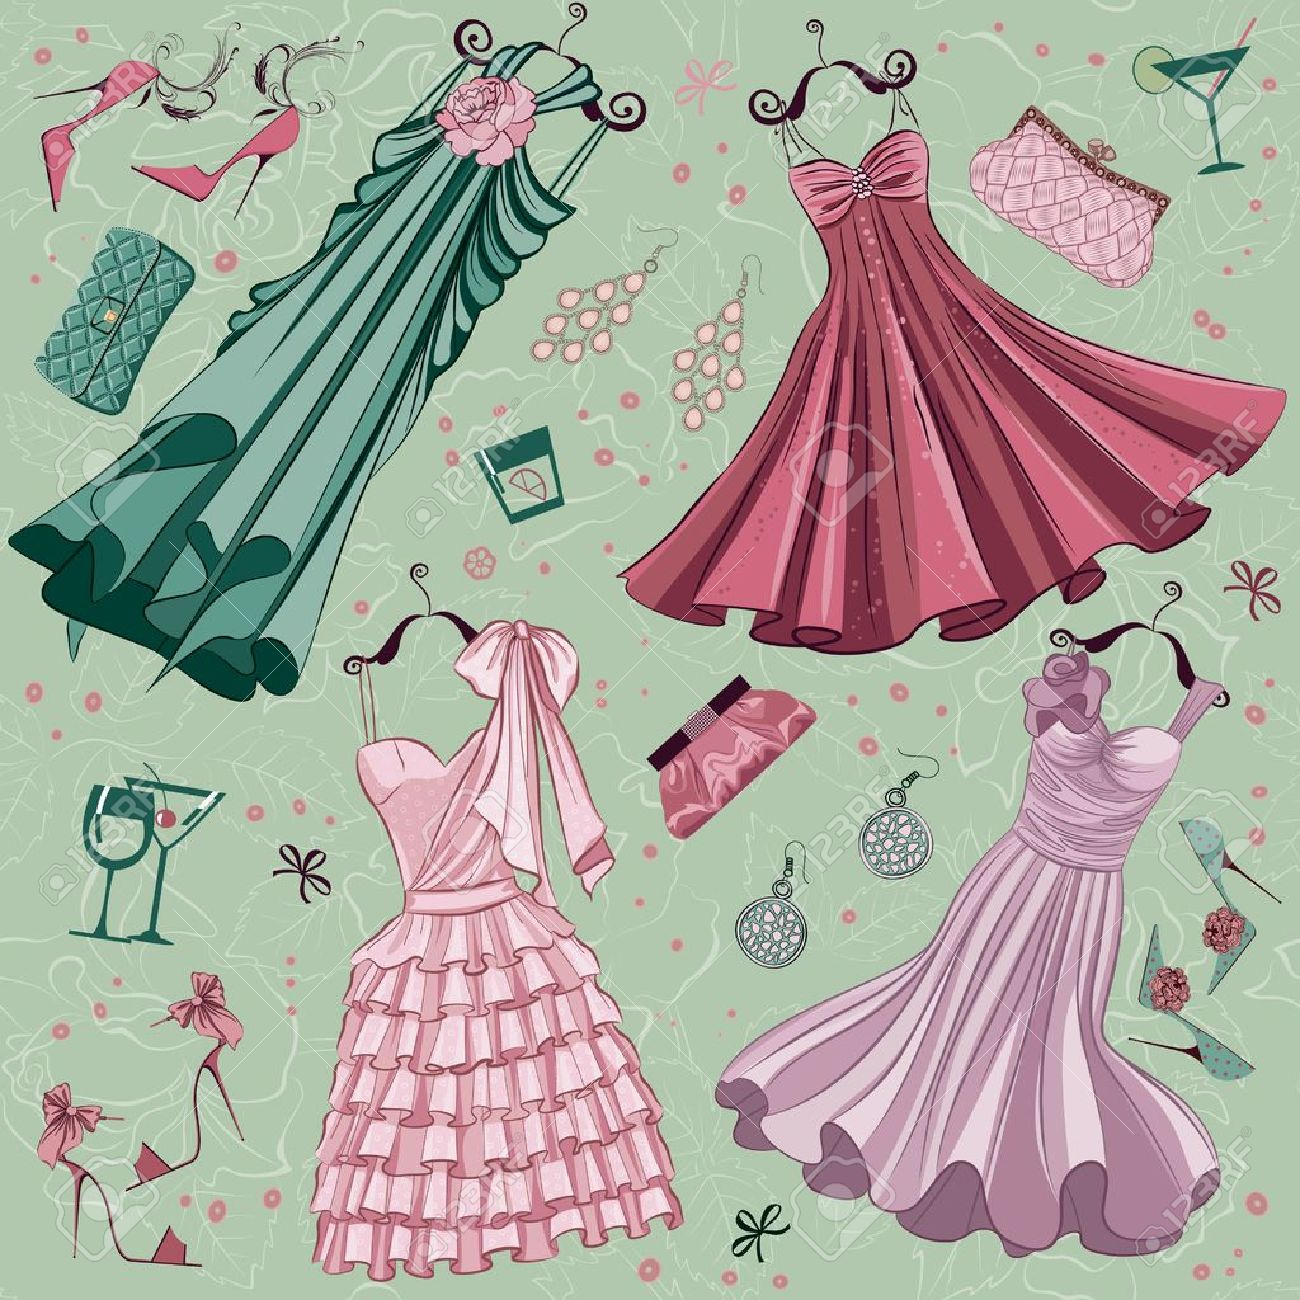 Set Of Women Fashion Clothes Ans Accessories Over Floral Background Royalty Free Cliparts Vectors And Stock Illustration Image 11052962